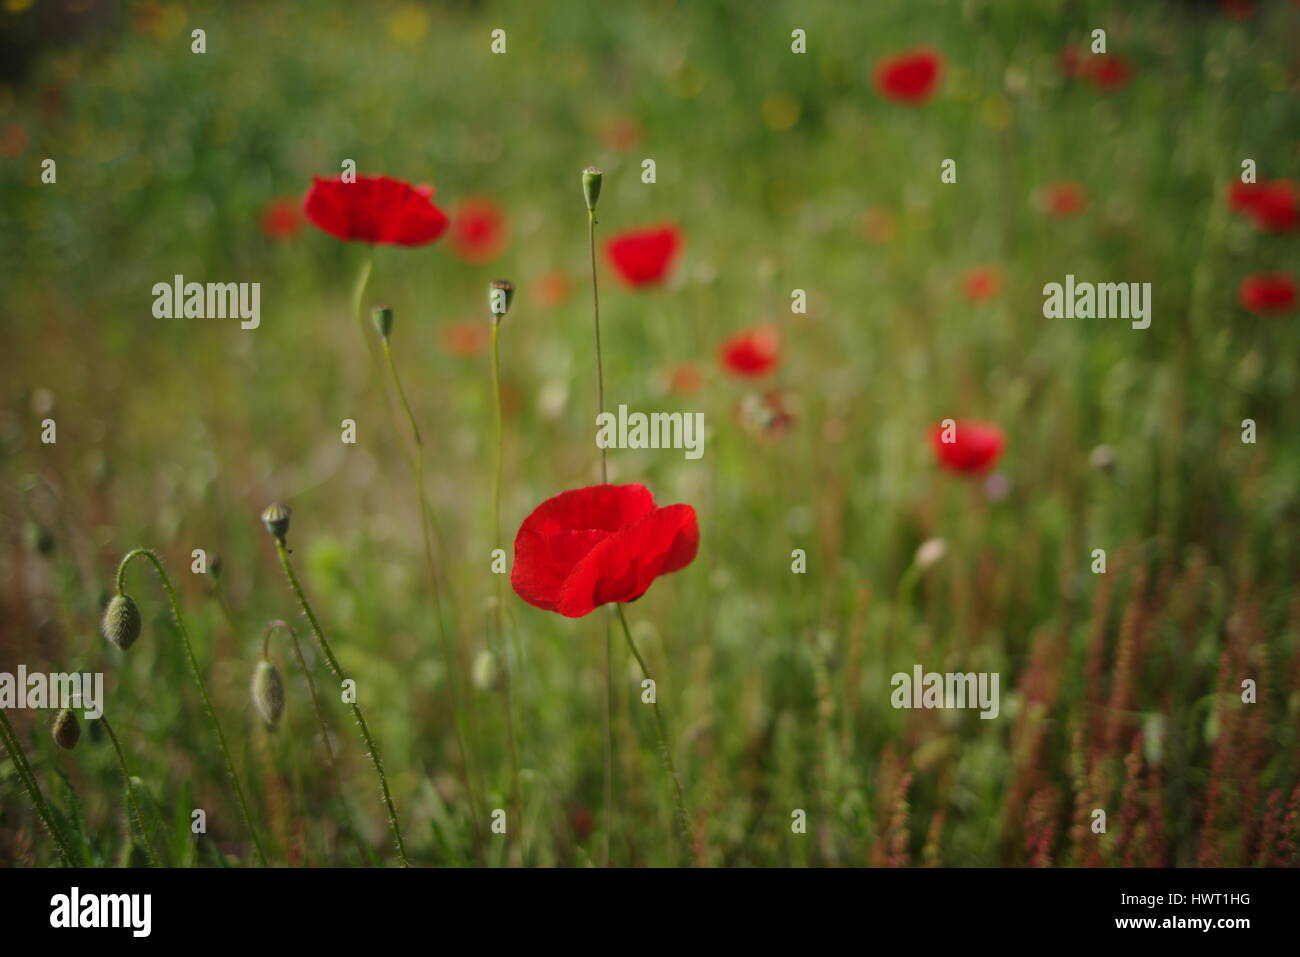 Heroin opium poppy stock photos heroin opium poppy stock images 2017 new photo picture of poppy and poppies in field to show red and green mightylinksfo